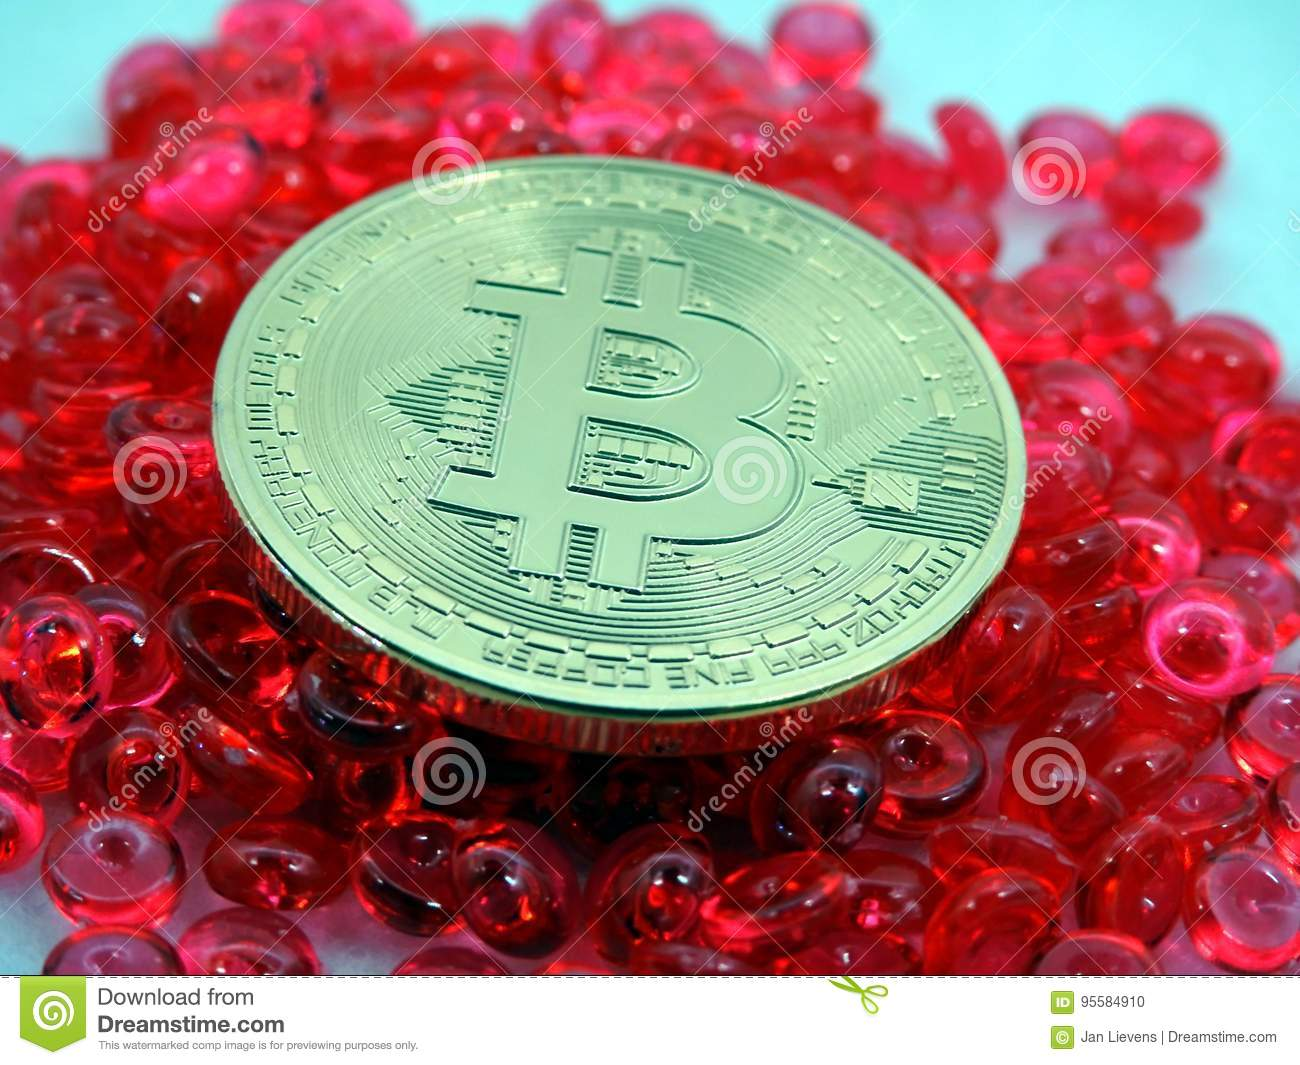 Bitcoin coin on top of red beats